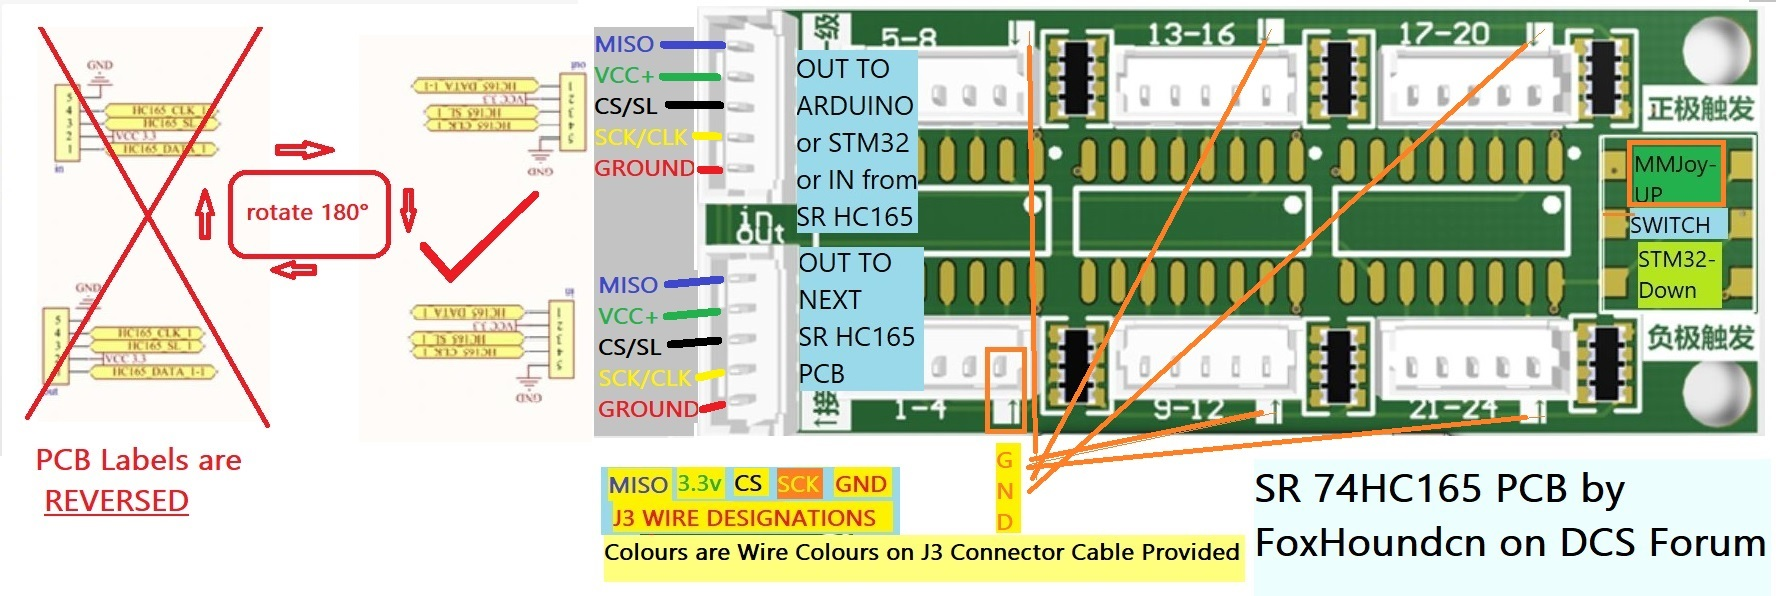 EJoyV3_SR_PCB_Pin-Out Corrected Pic.jpg